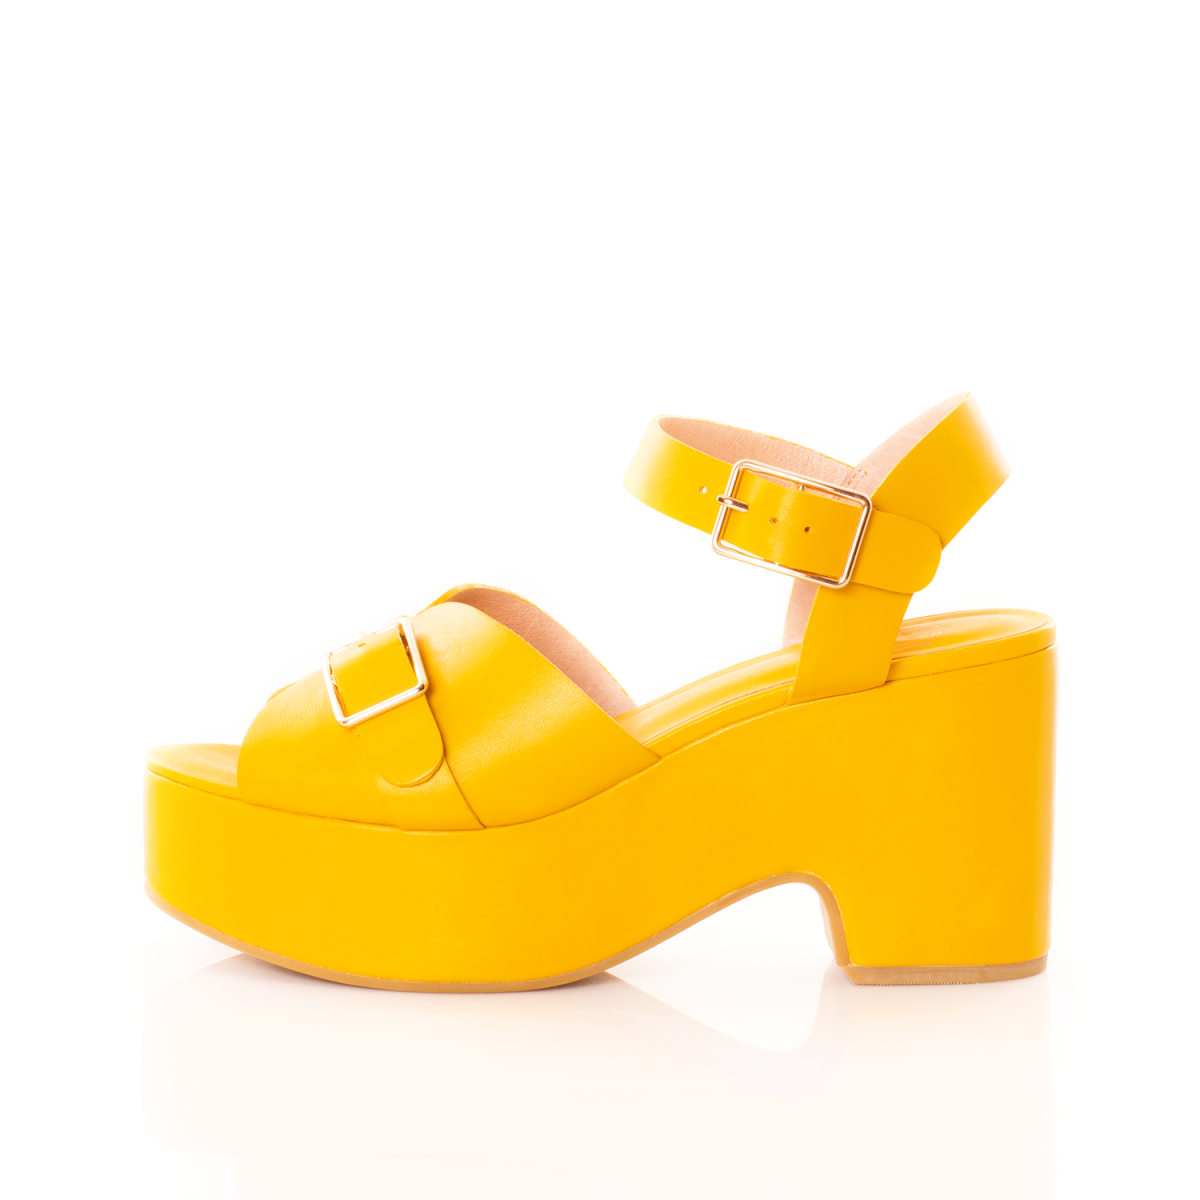 Raf wedge, $296, available at Charlotte Stone.